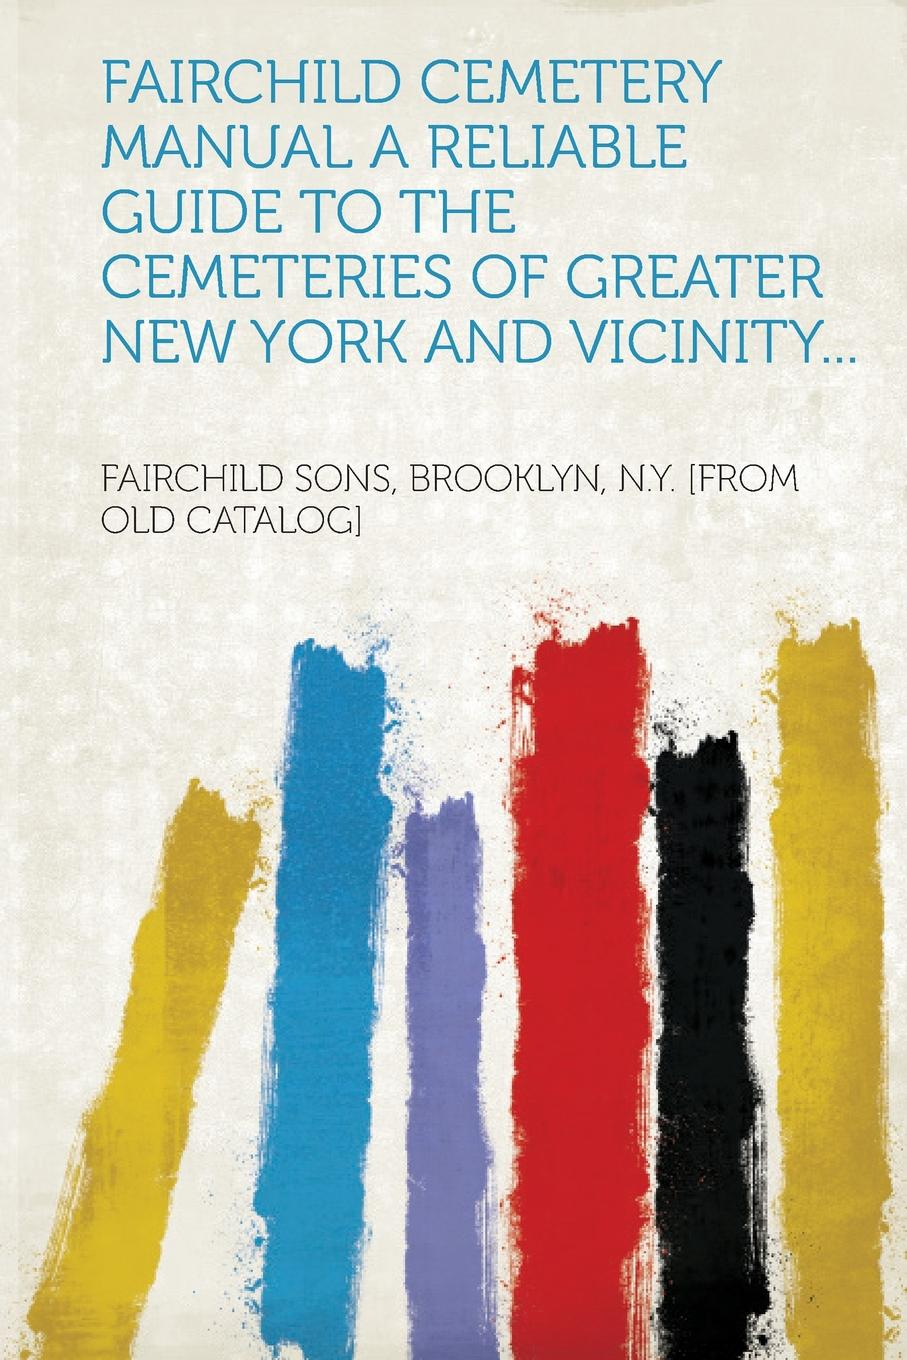 Fairchild Cemetery Manual a Reliable Guide to the Cemeteries of Greater New York and Vicinity...